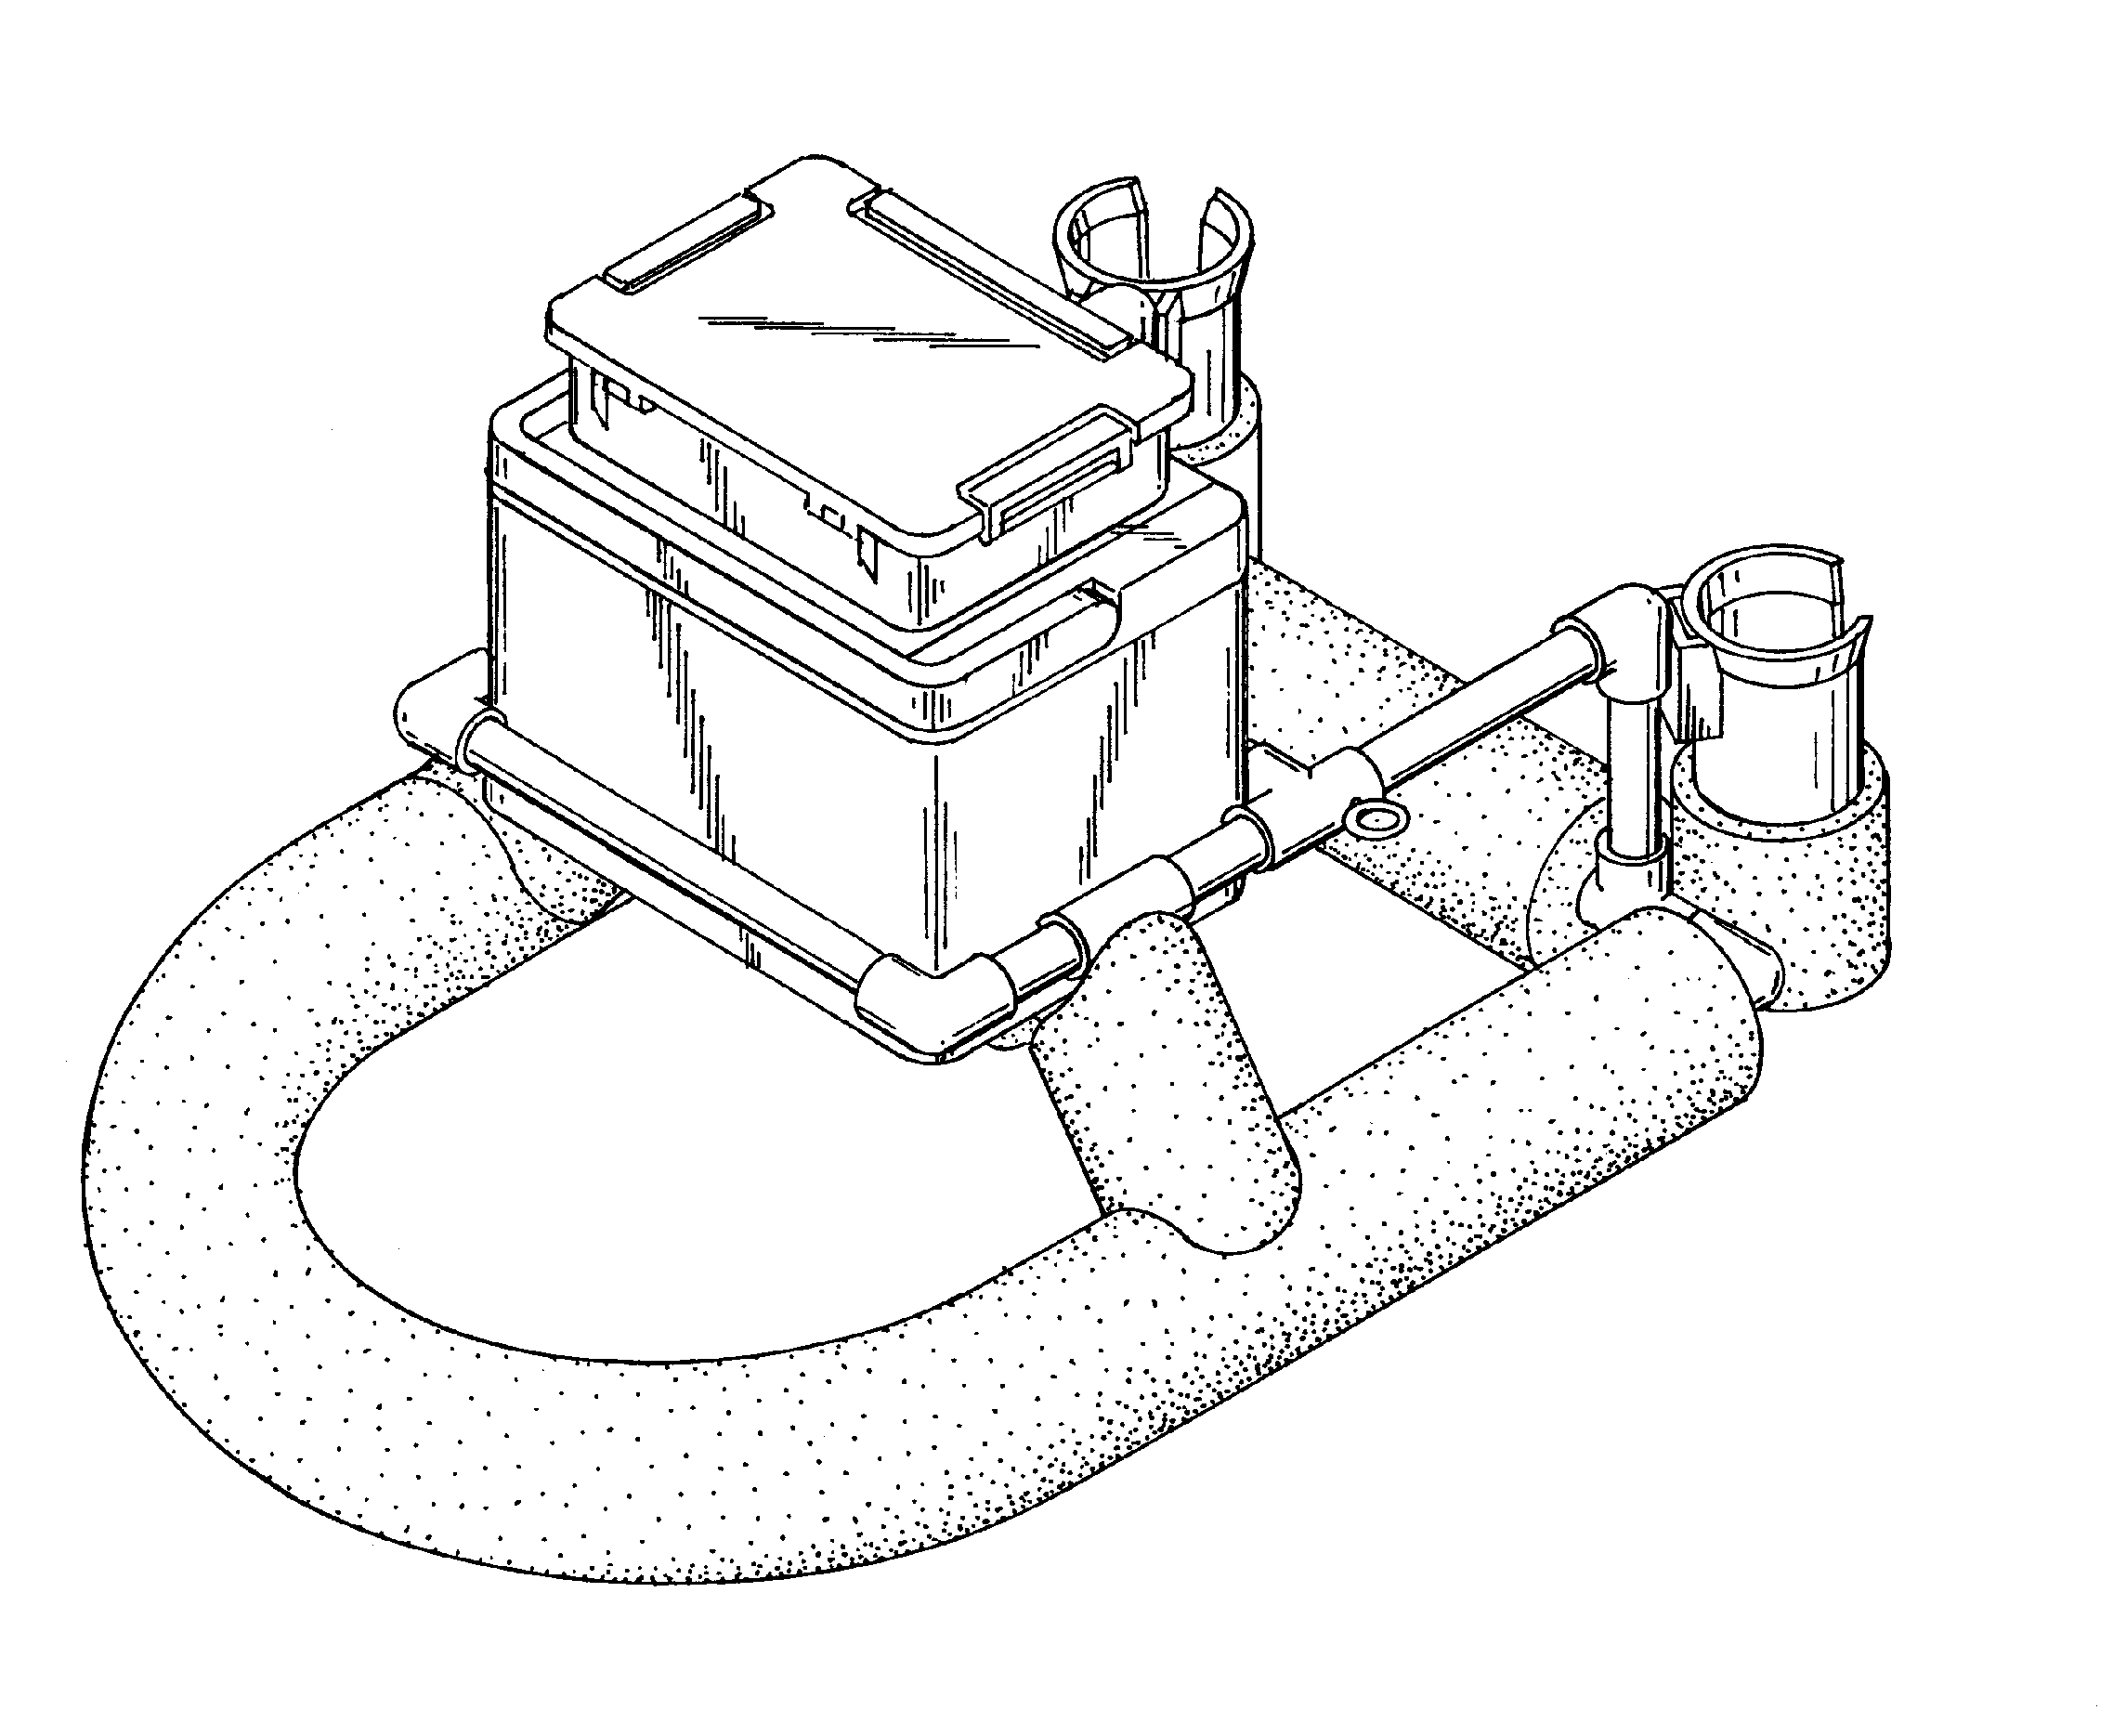 Patent usd639380 floating wade fishing gear holder for Wade fishing caddy